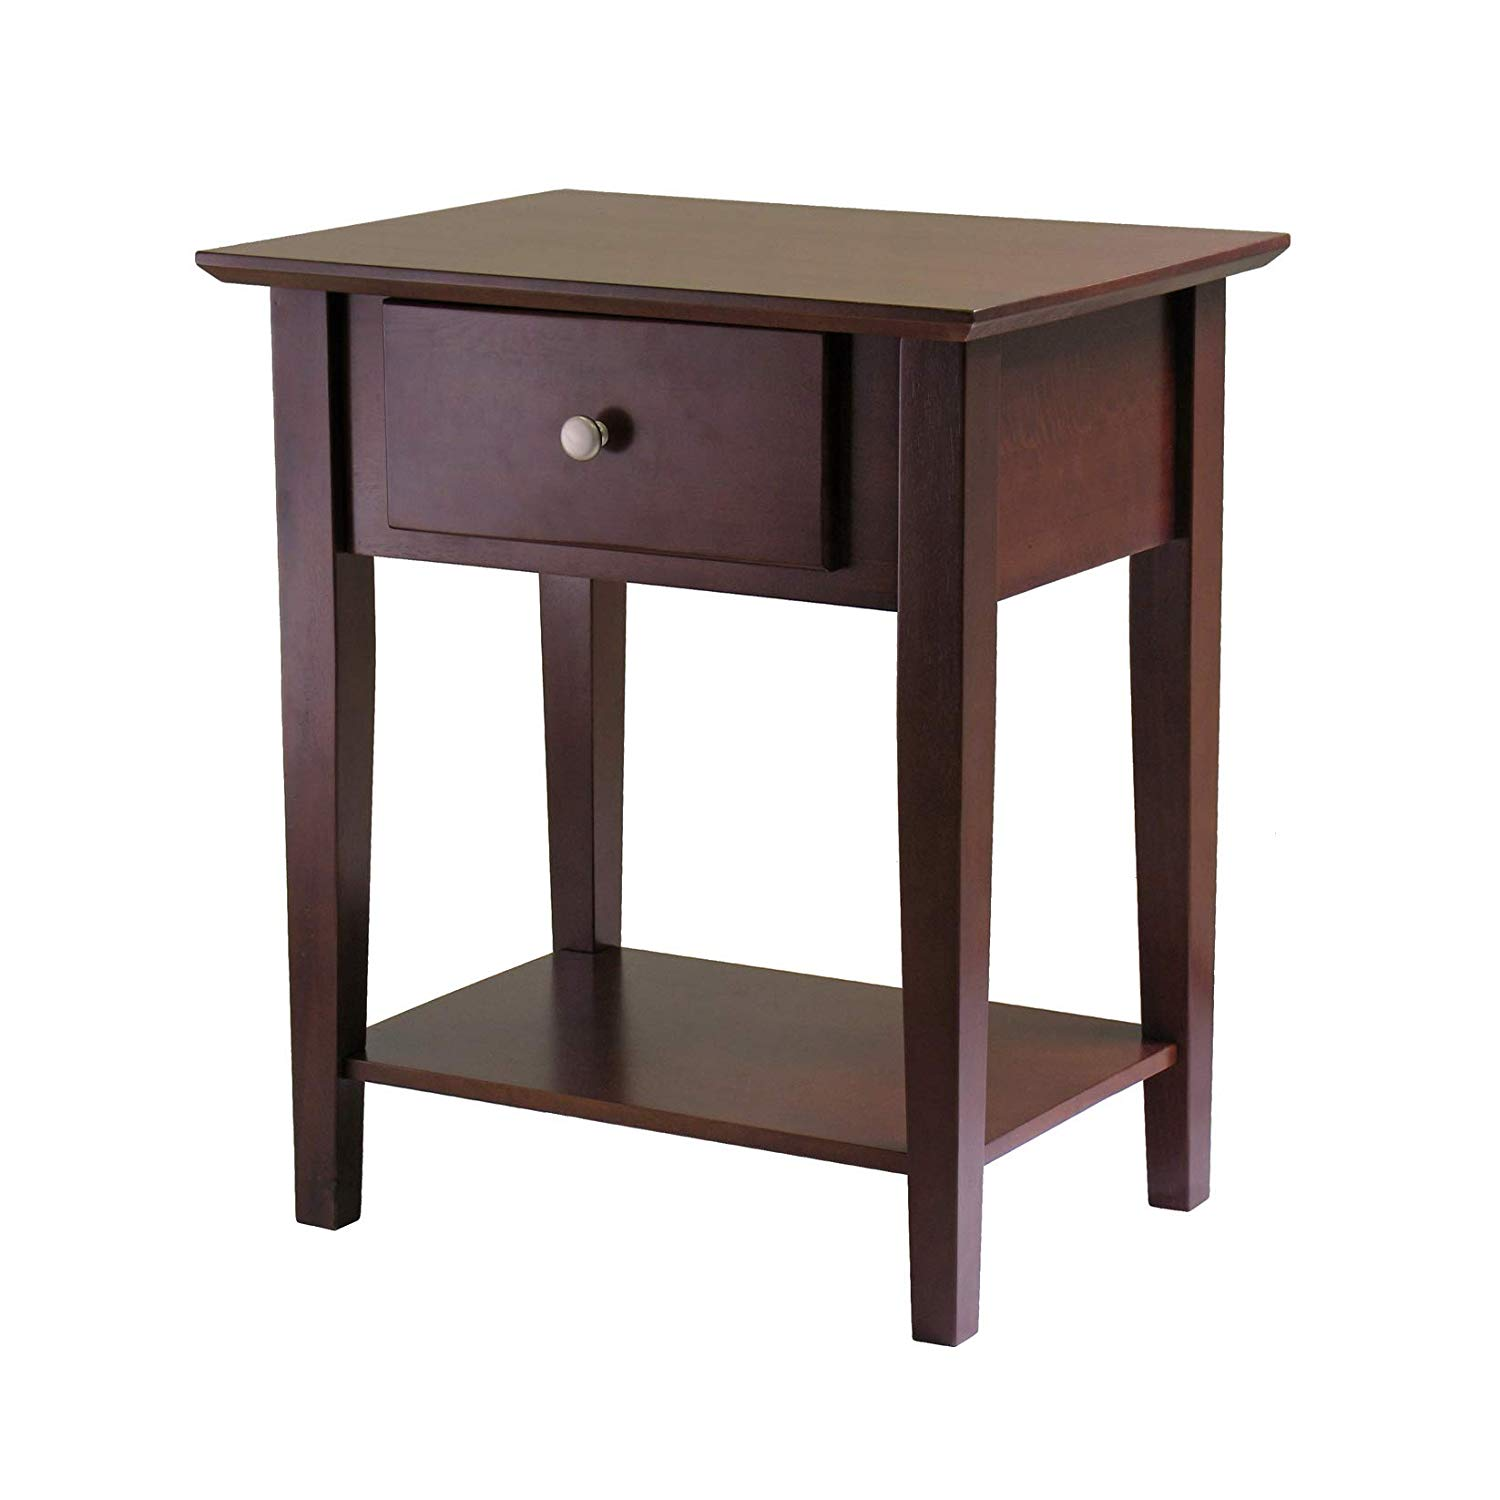 winsome wood shaker accent table antique walnut nightstand kitchen dining ornaments baxter furniture long skinny sofa chinese style floor lamps lamp with usb port patio clearance